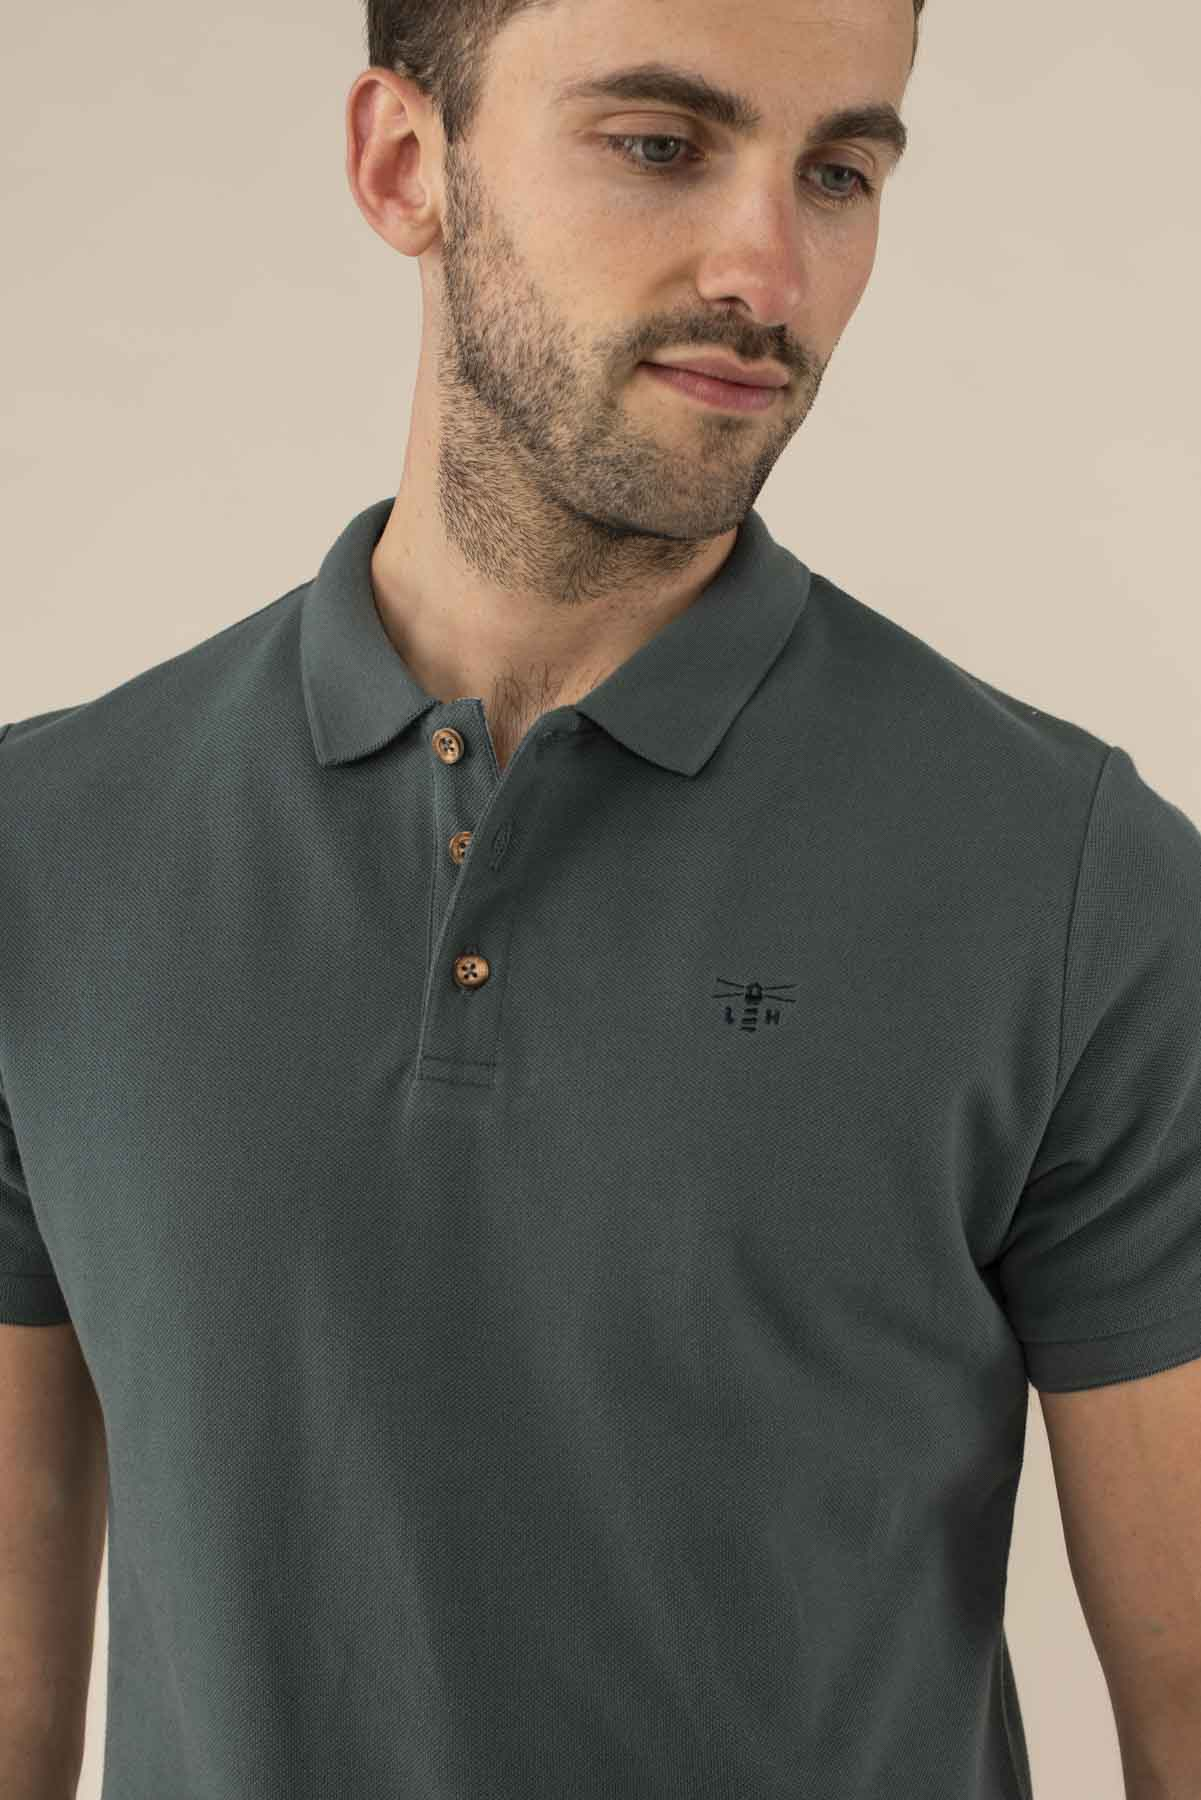 Lighthouse Pier Polo - Men's Classic Polo Shirt - Olive Green